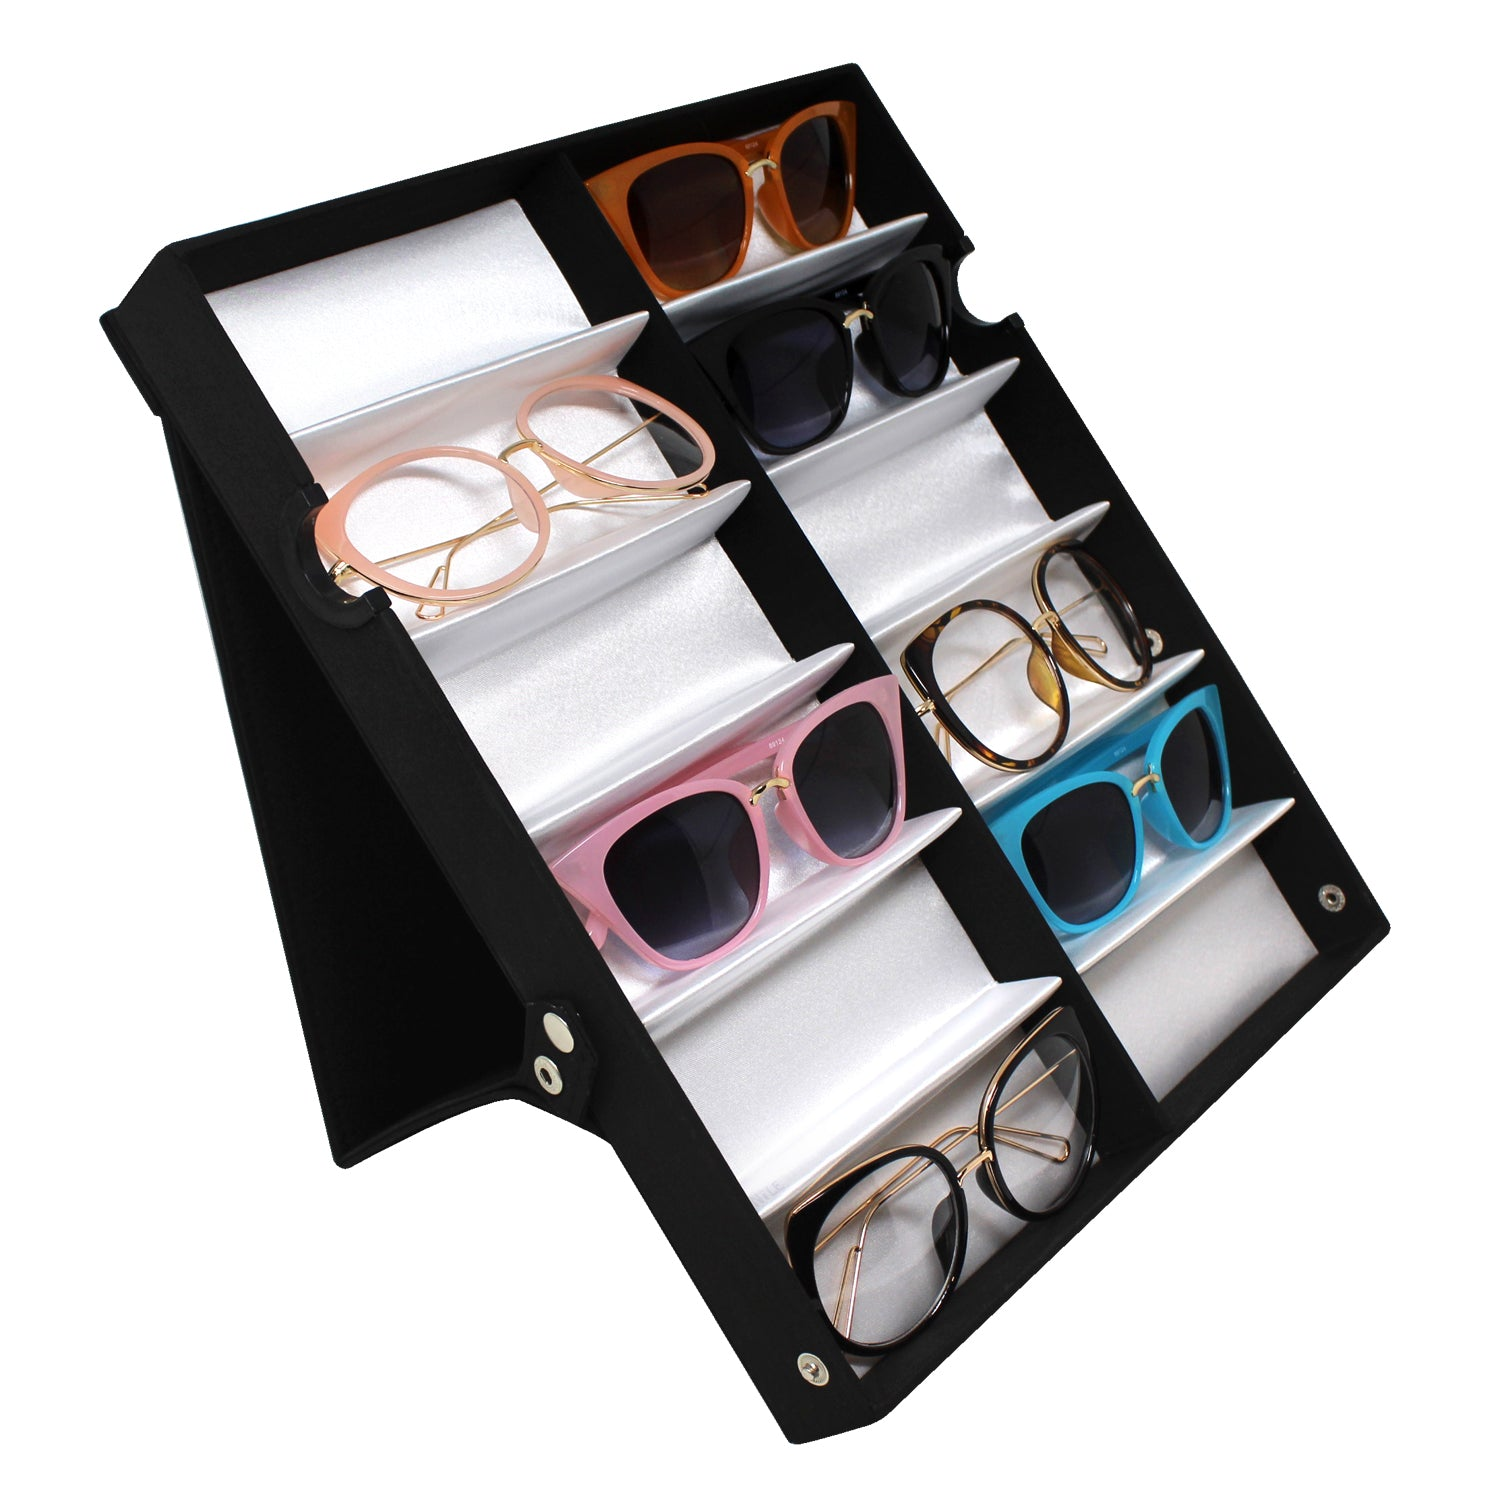 #TR-34VF Eyewear Storage And Display Case,Fabric Covered